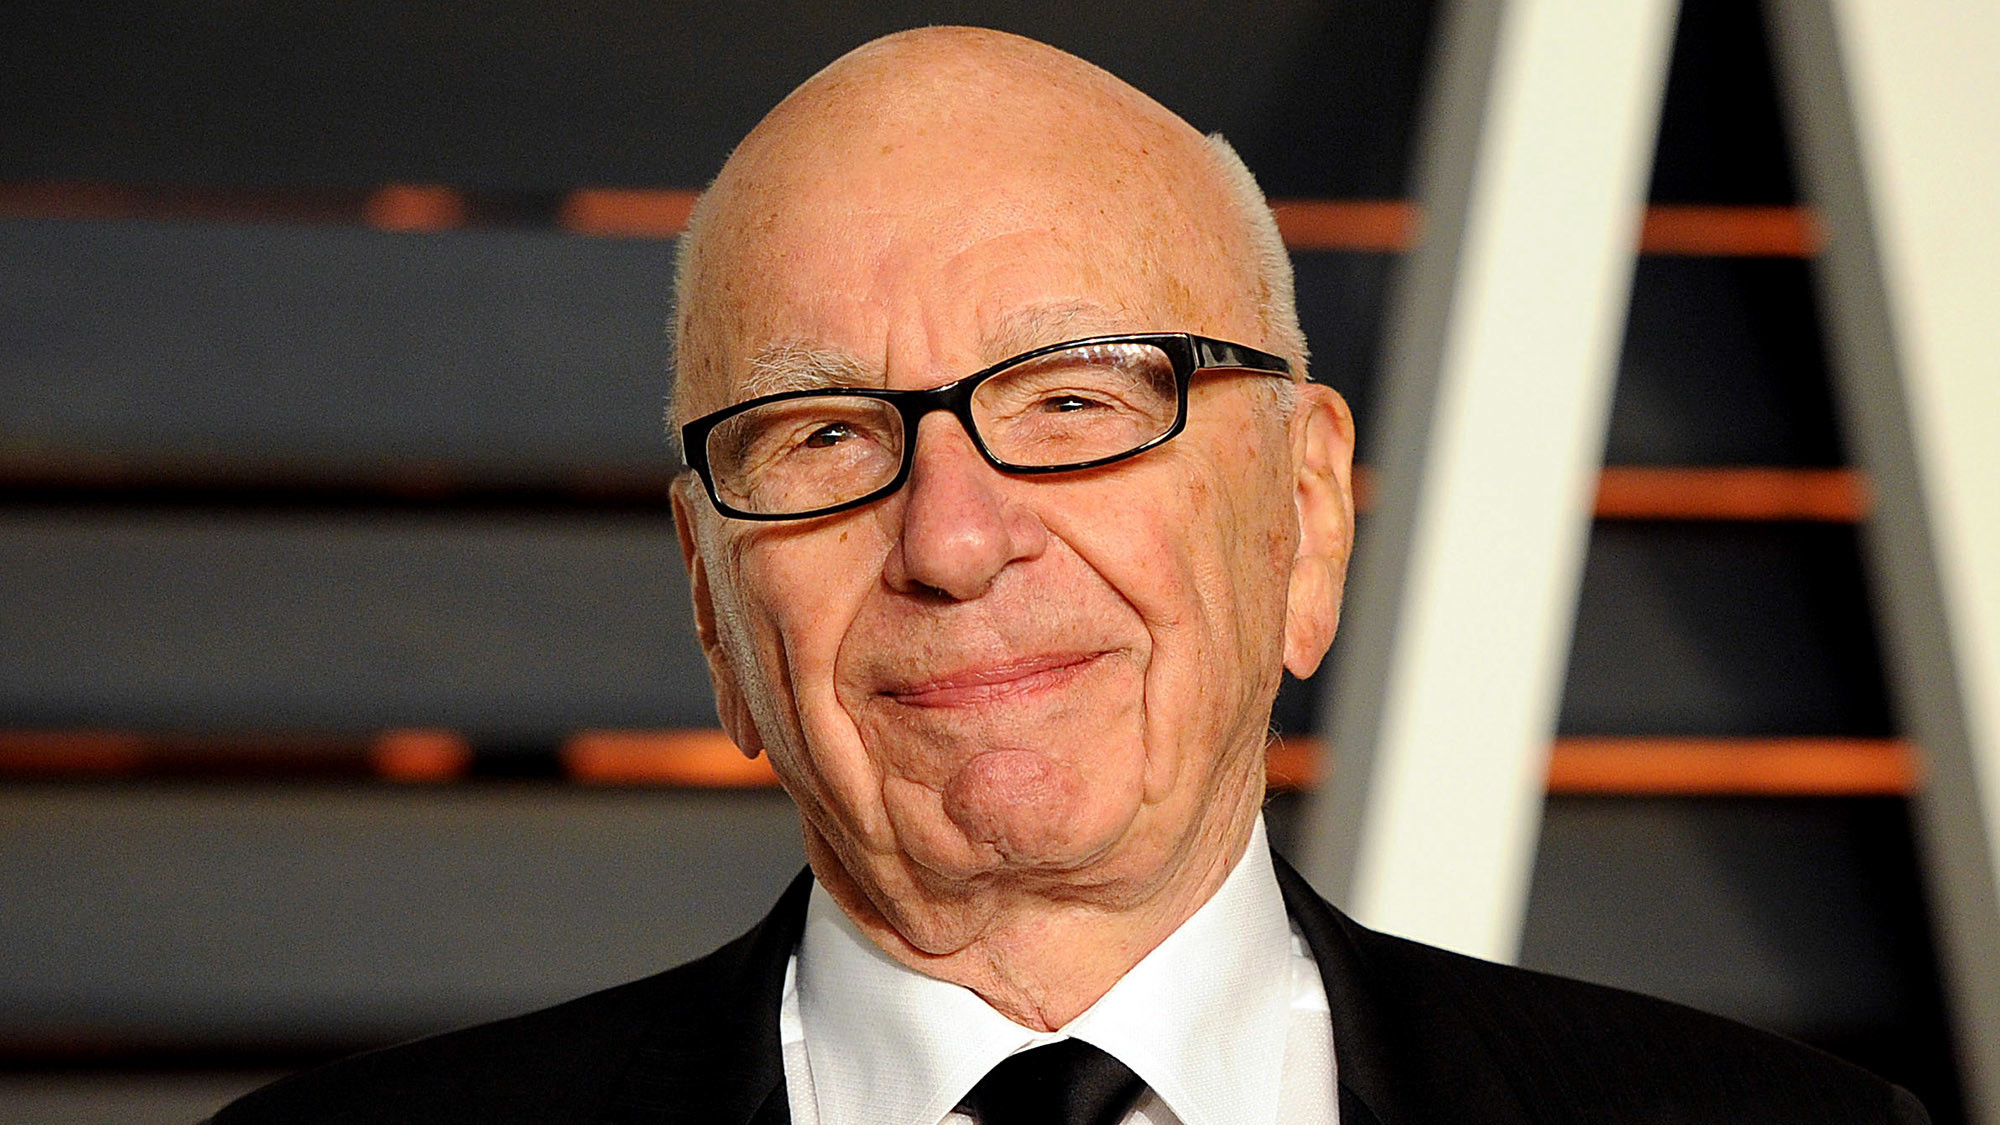 Rupert Murdoch, executive chairman of 21st Century Fox The brash billionaire who built a media empire